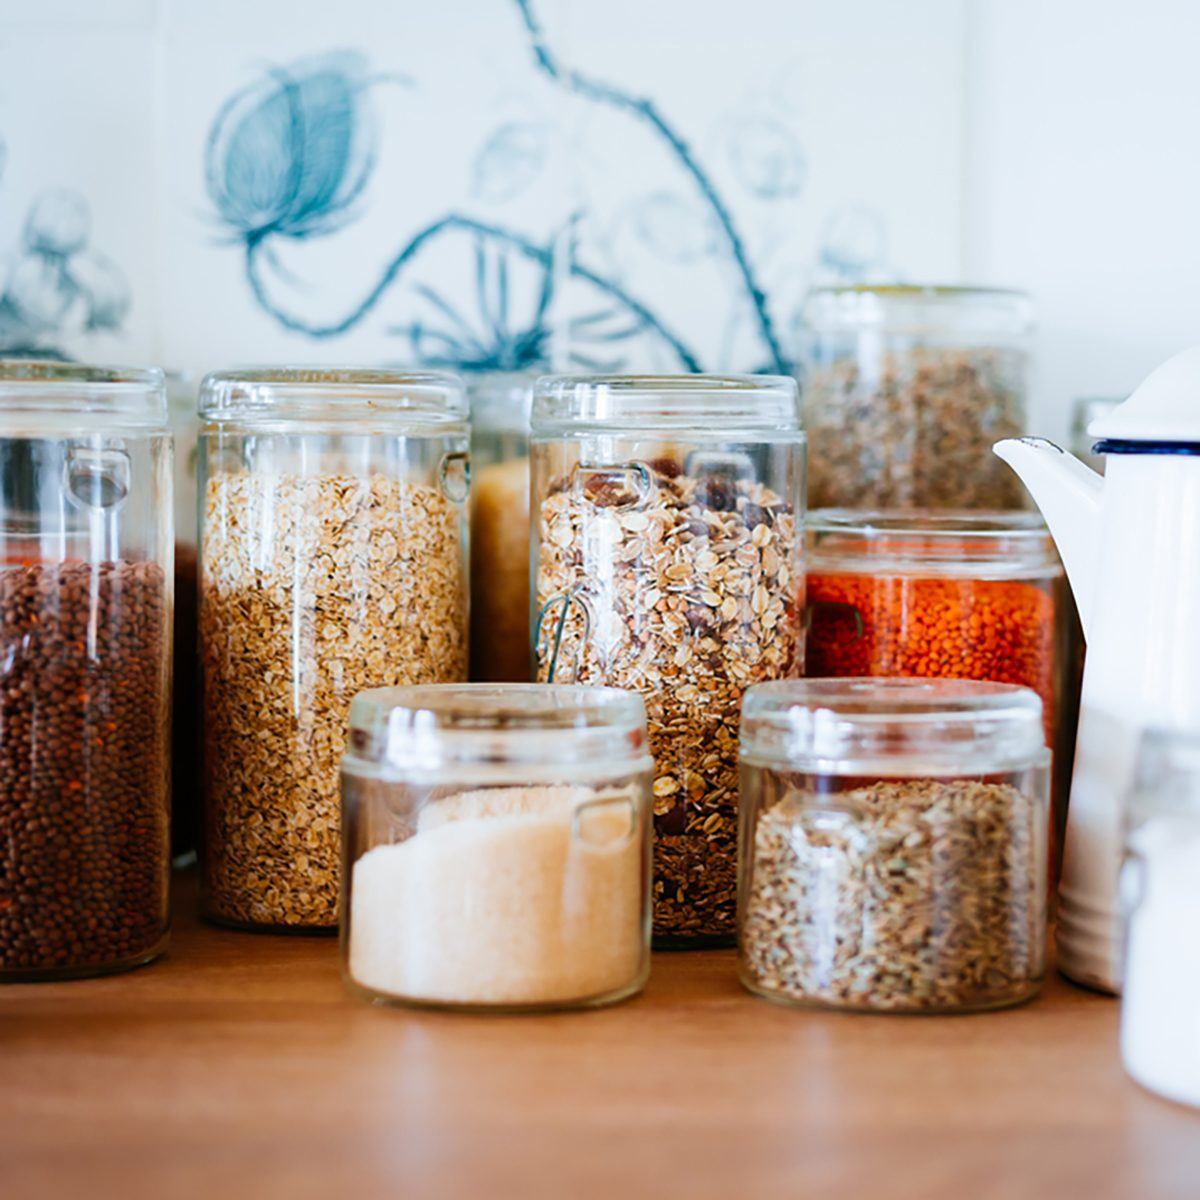 Uses for Mason jars - store bulk goods